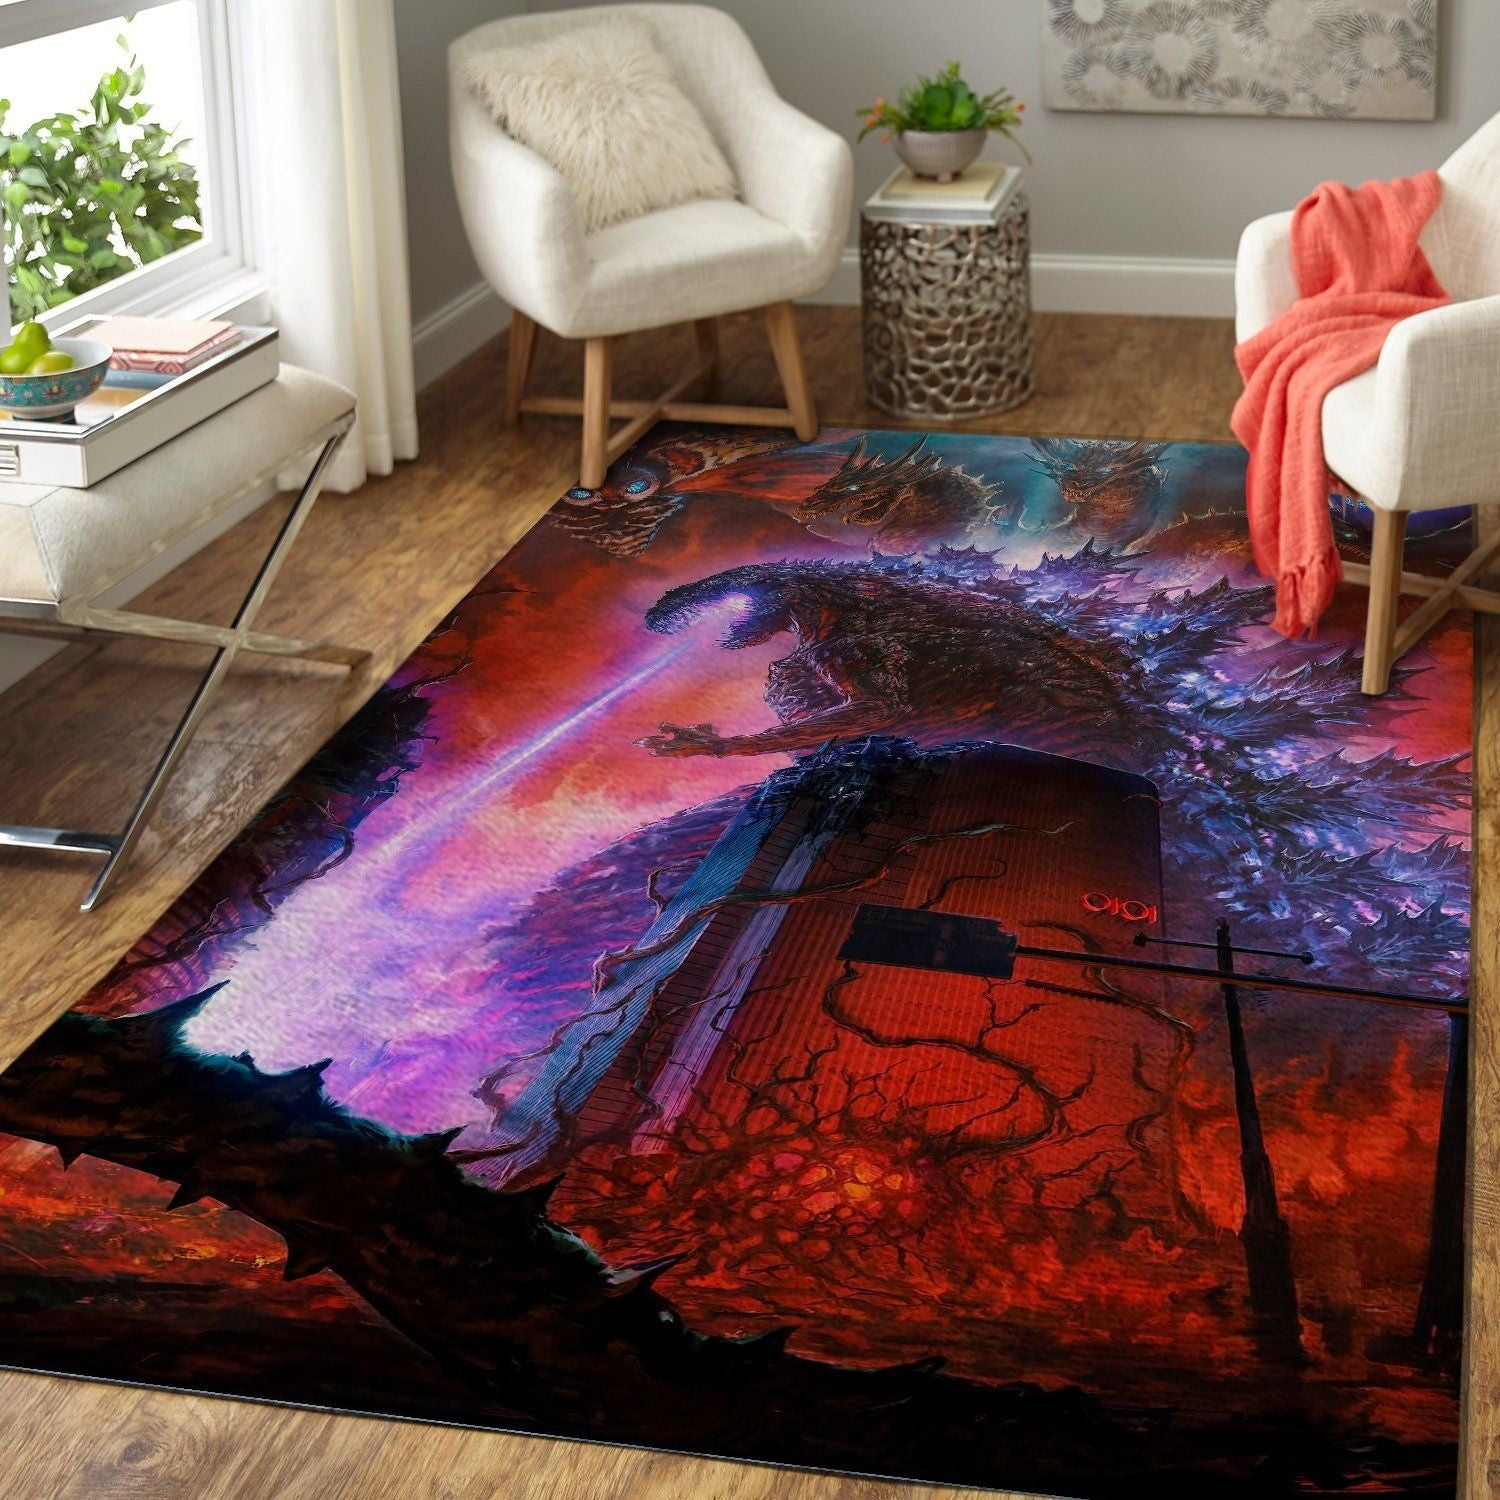 Godzilla Area Rug - King of the Monsters Movie Floor Decor 1910193